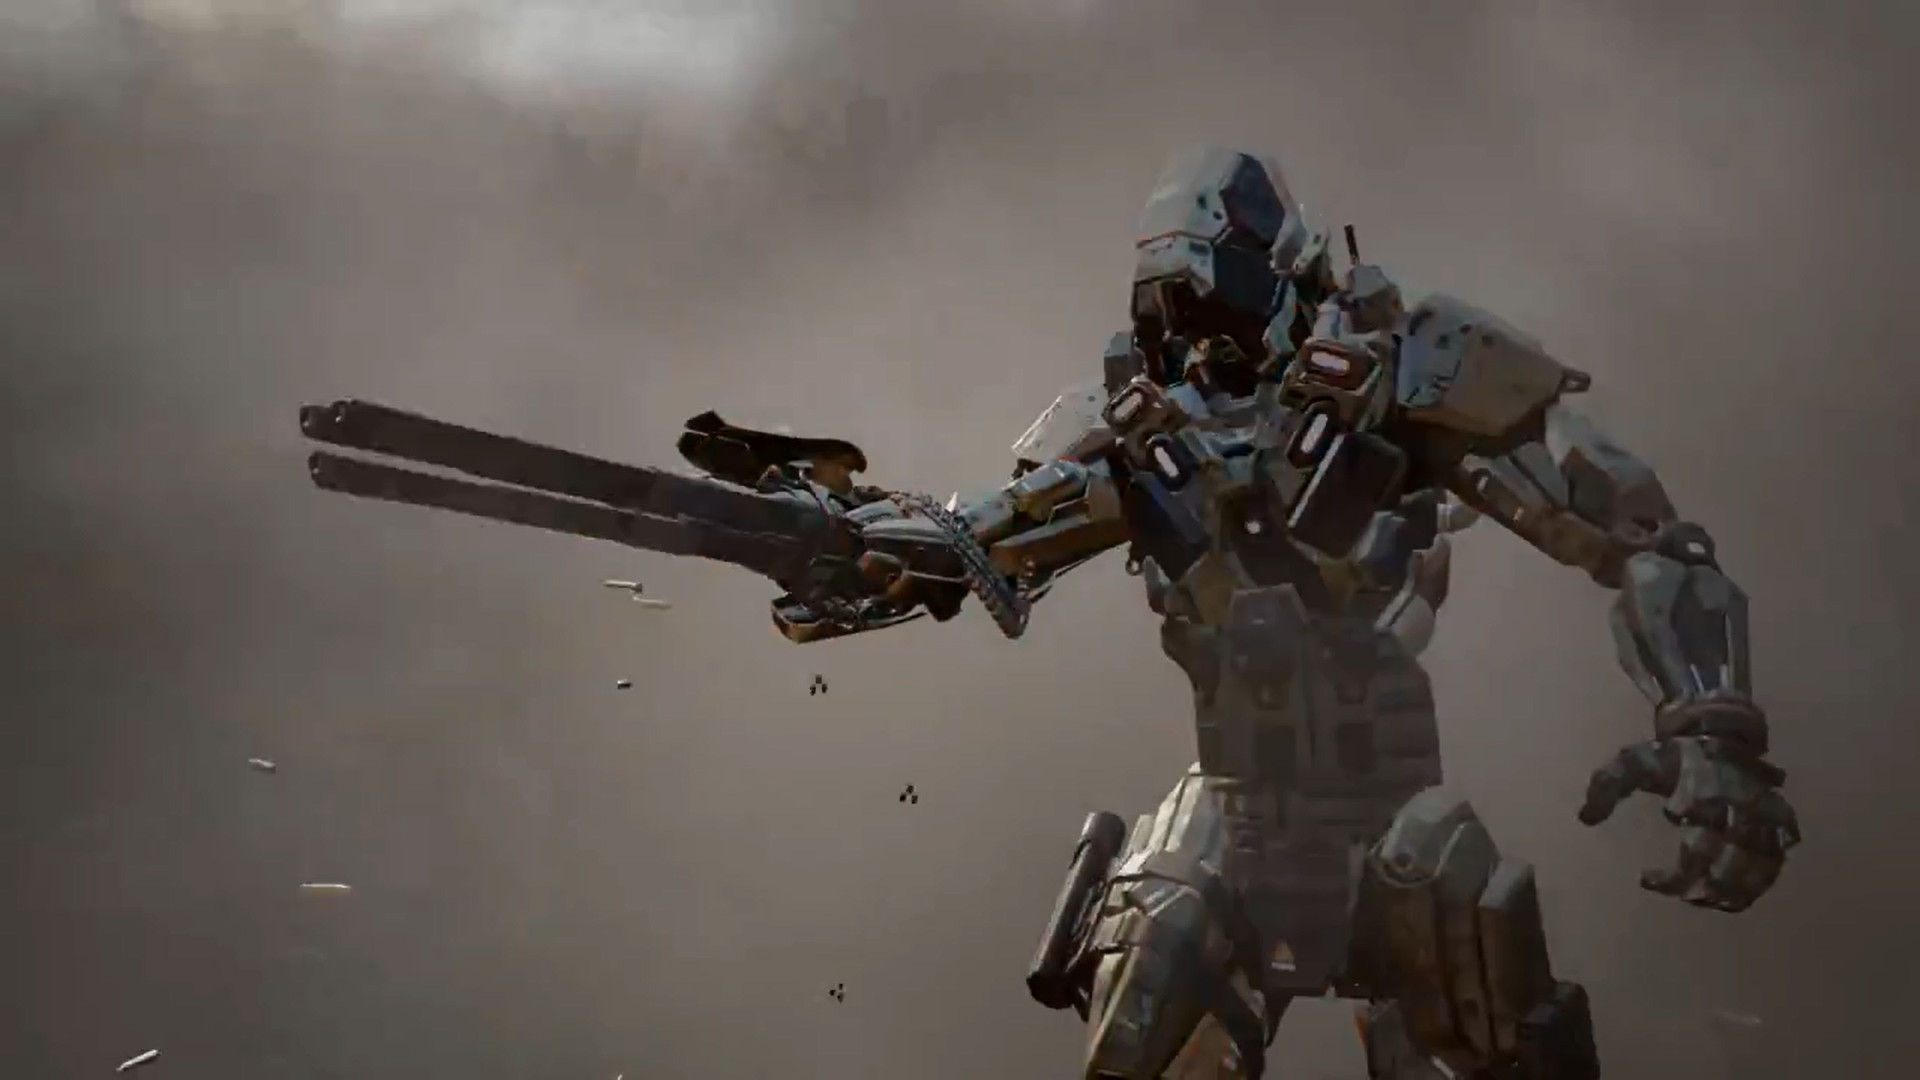 "Res: 1920x1080, Experimental War Robot ""Reaper"" - The Call of Duty Wiki - Black Ops II,  Ghosts, and more! - Wikia"